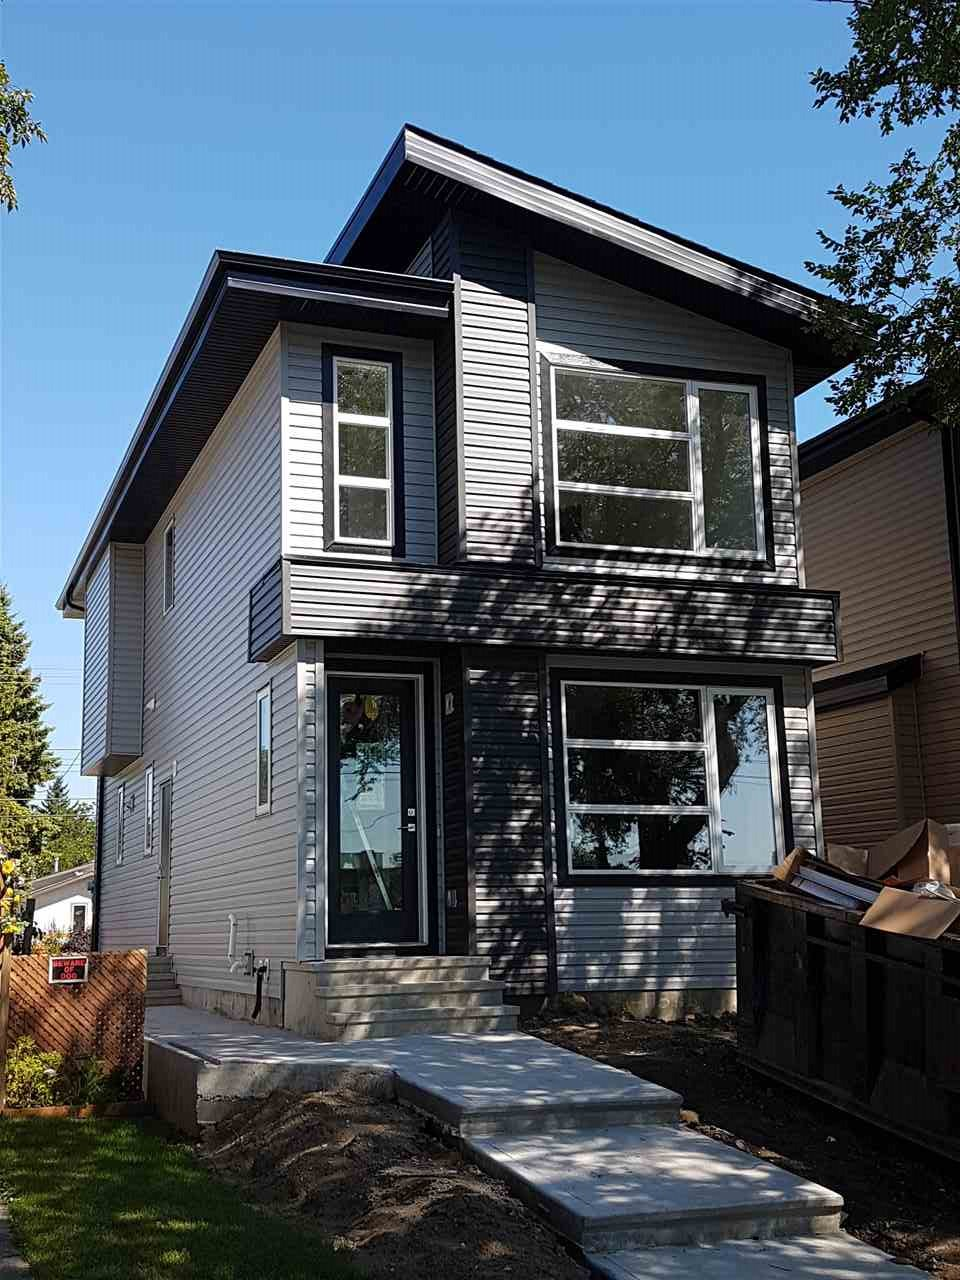 Main Photo: 4624 113 Avenue NW in Edmonton: Zone 23 House for sale : MLS® # E4077535